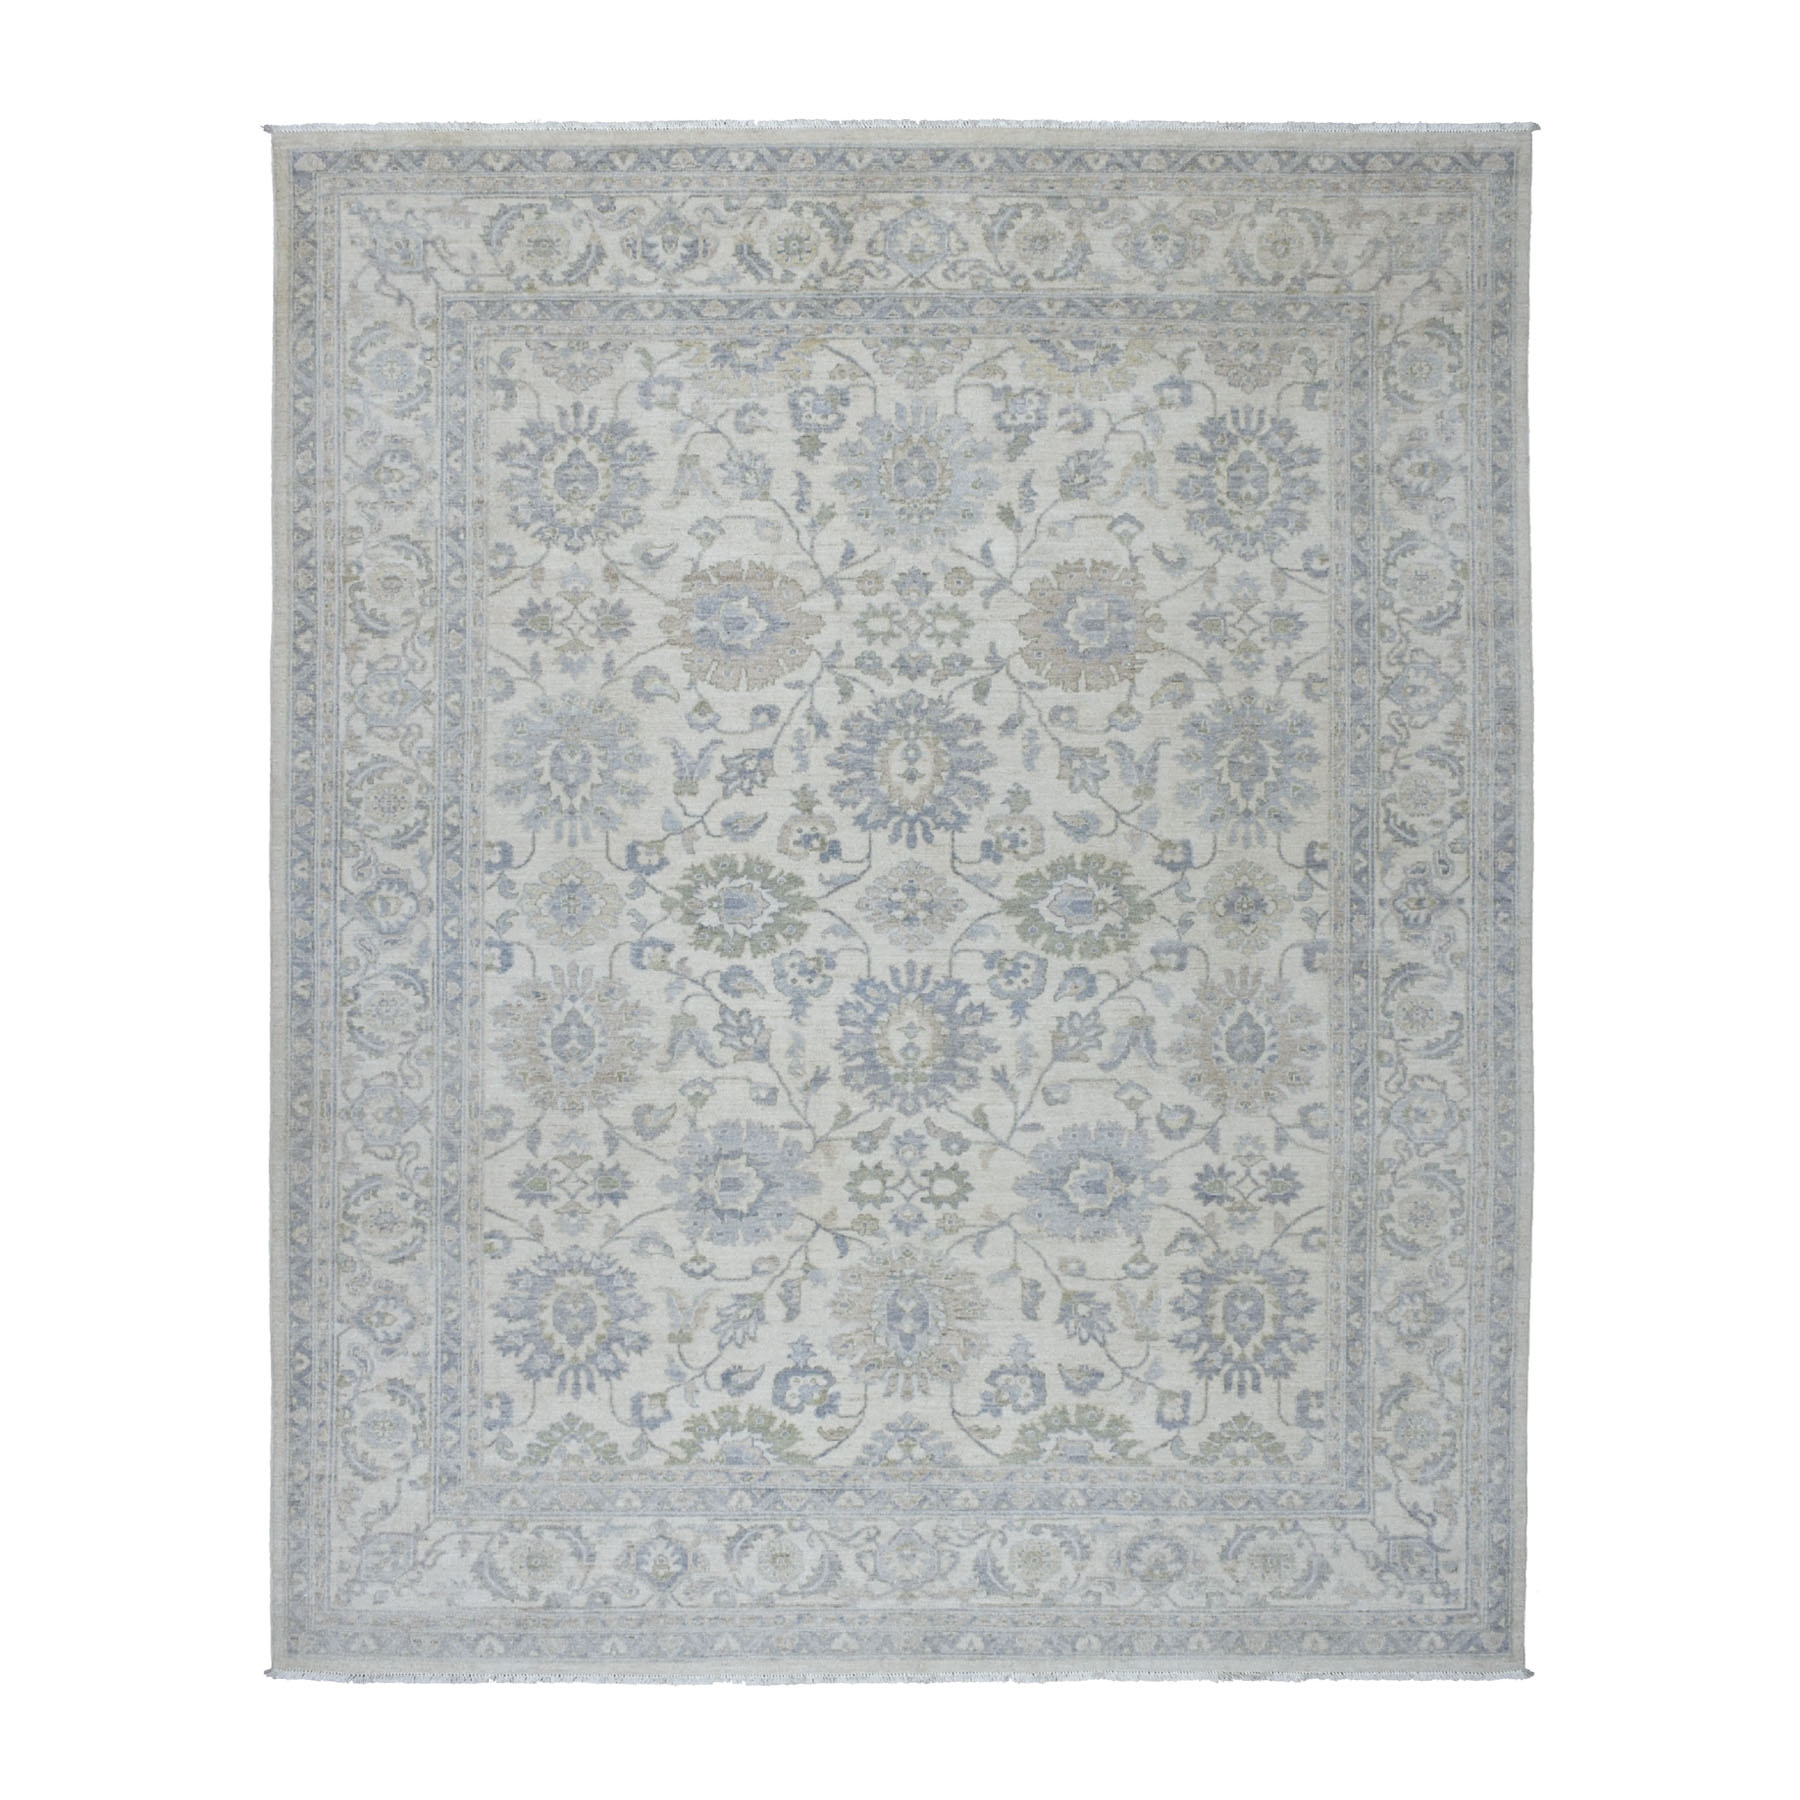 "8'1""X9'10"" White Wash Peshawar Pure Wool Hand Knotted Oriental Rug moaec9e0"